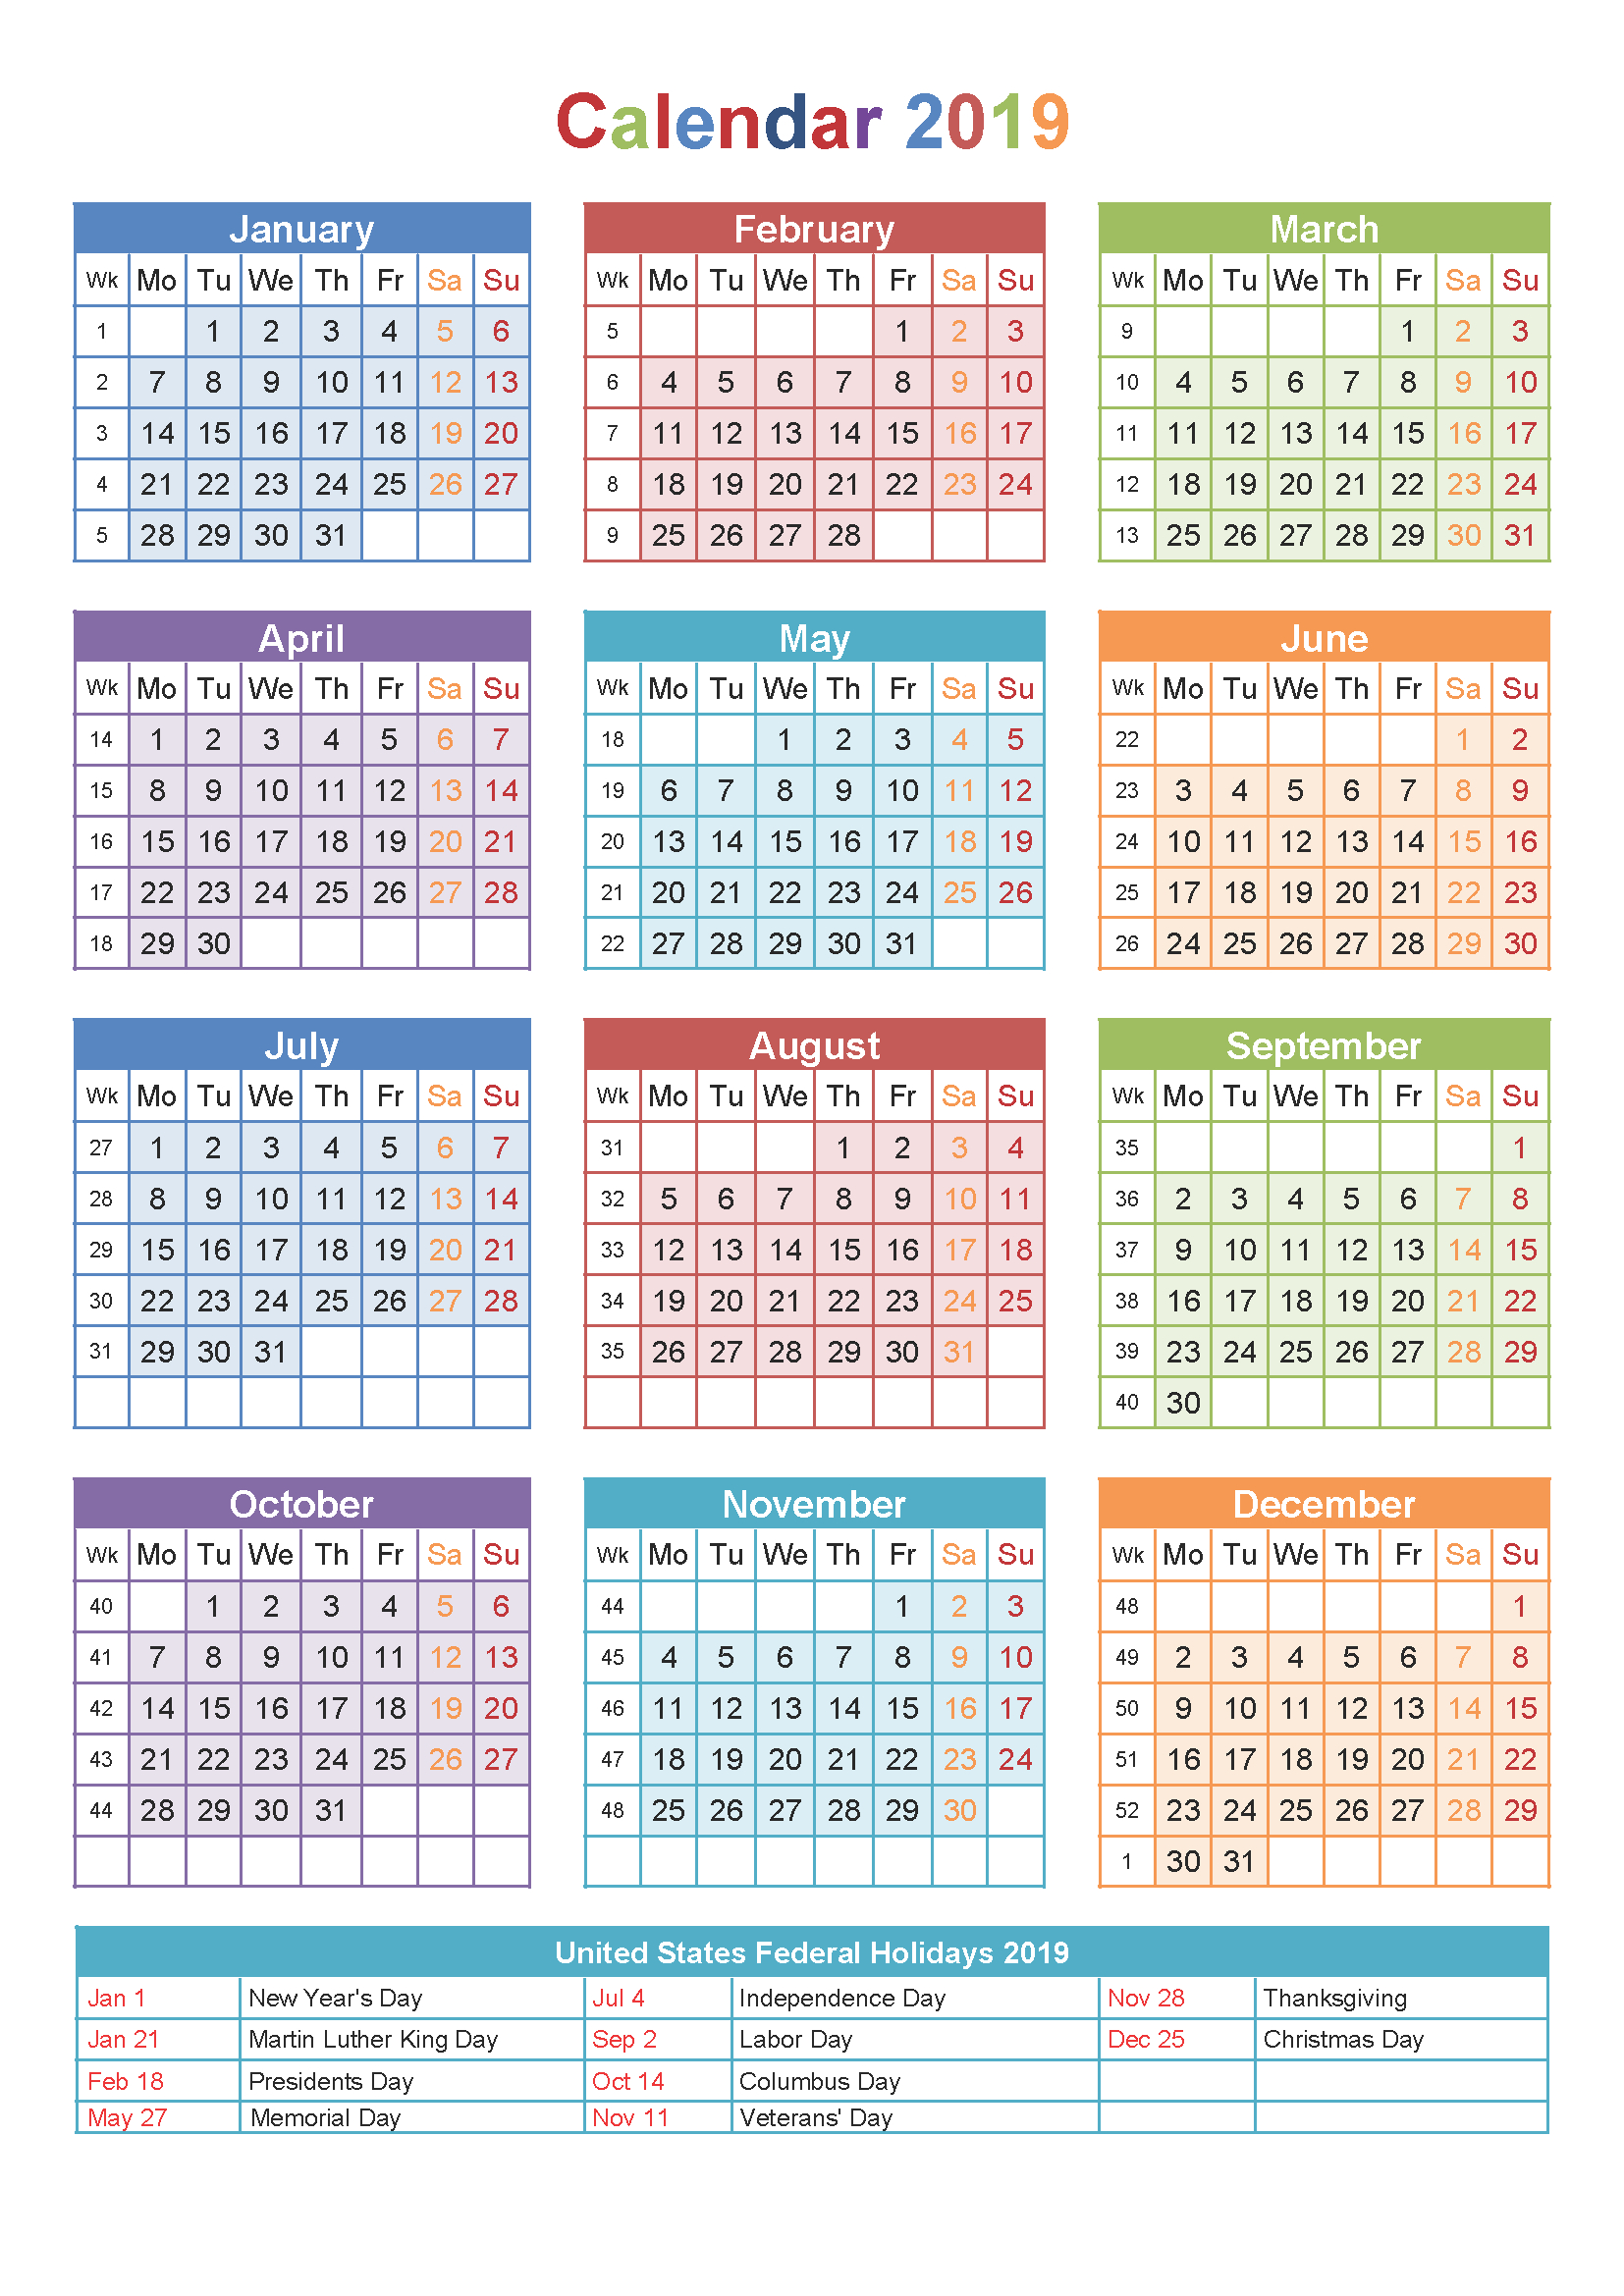 2019 Yearly Calendar Printable Templates – Holidays, Pdf Word Excel in Blank Calender Academic Year 2019 -2020